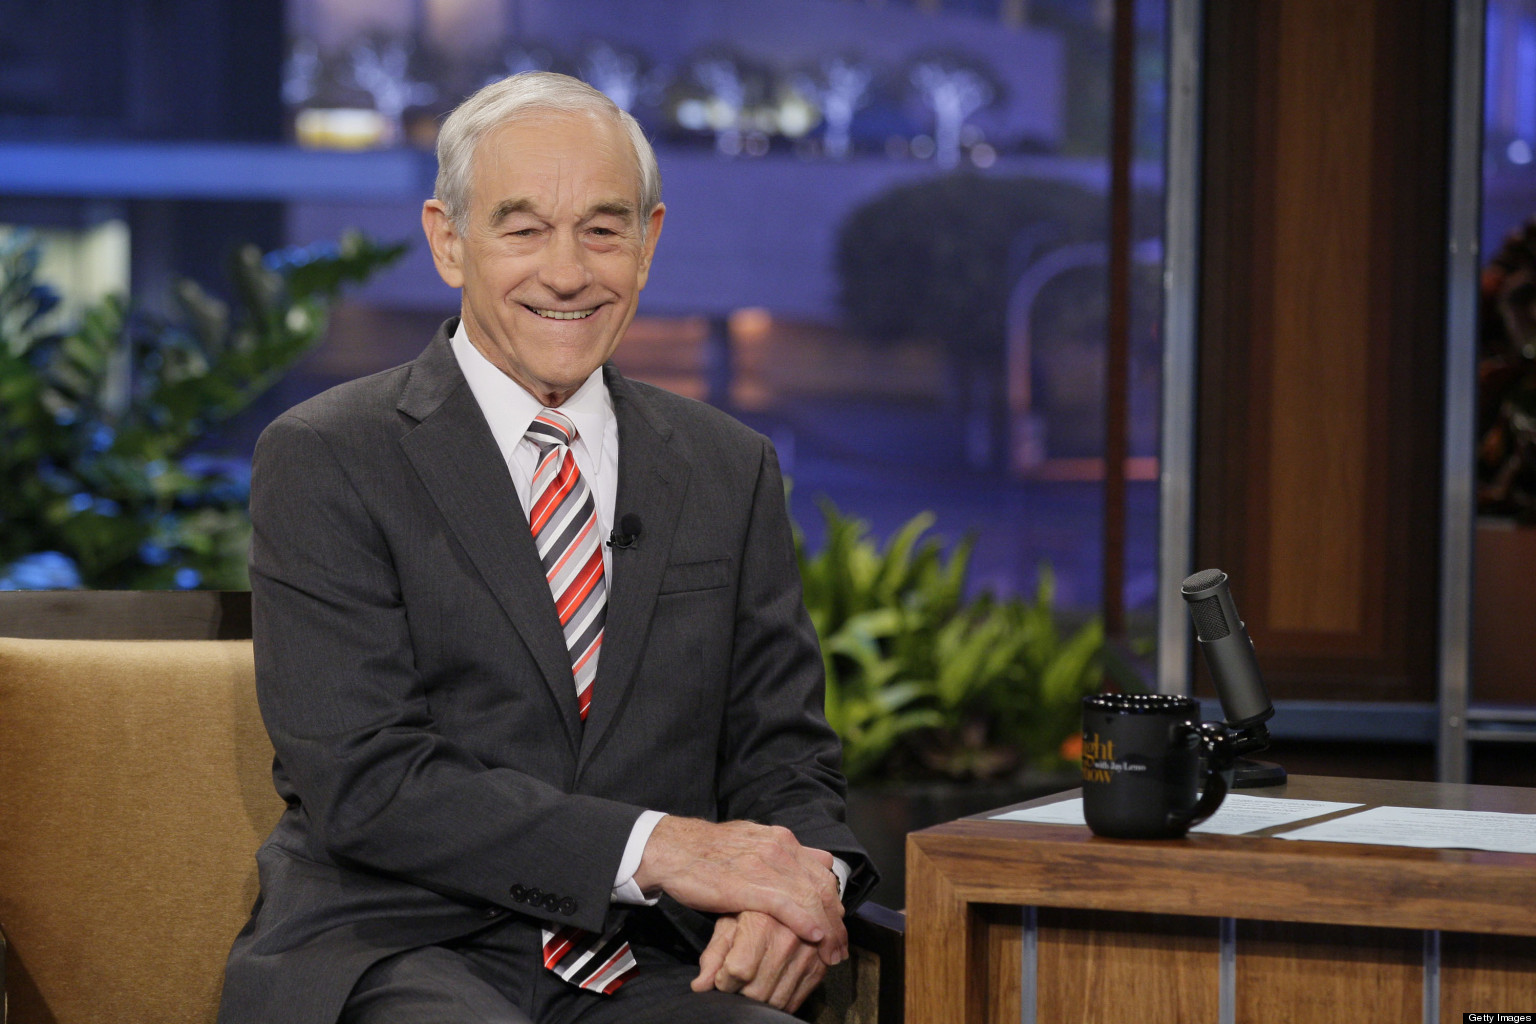 Ron Paul Curriculum Review